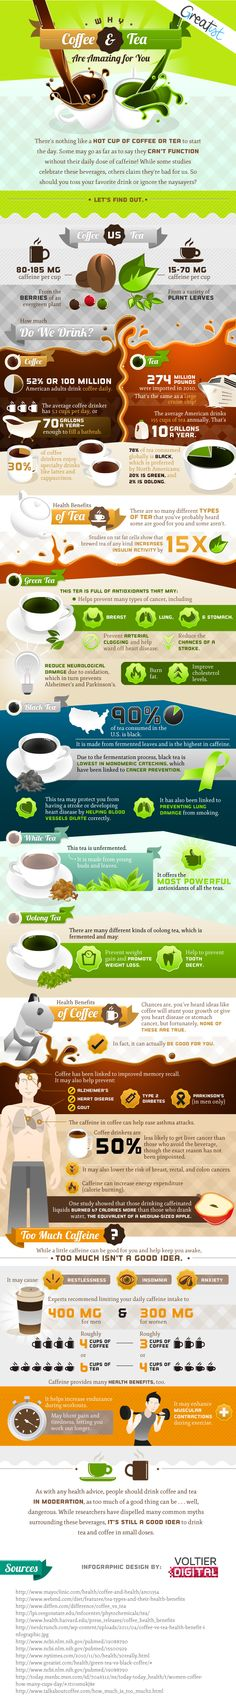 Whether you're a coffee or a tea drinker here is a fun resource explaining why both are beneficial to your health.